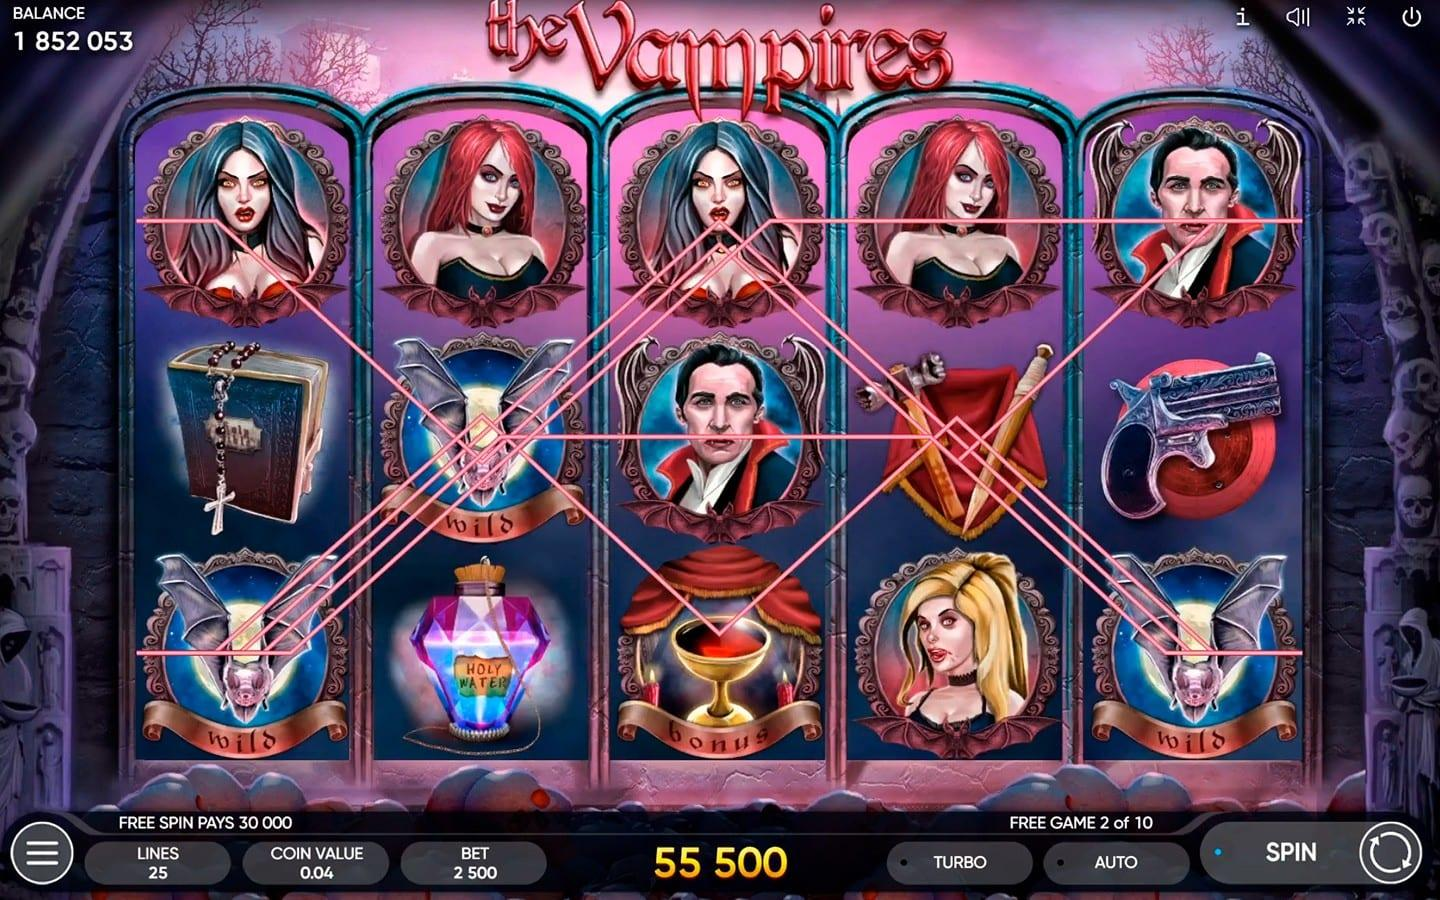 Bonus Features and Free Spins: You have to know that every prize of free spins is multiplied x3. Enjoy The Vampire Slot Machine and be happy on your way to the bank!